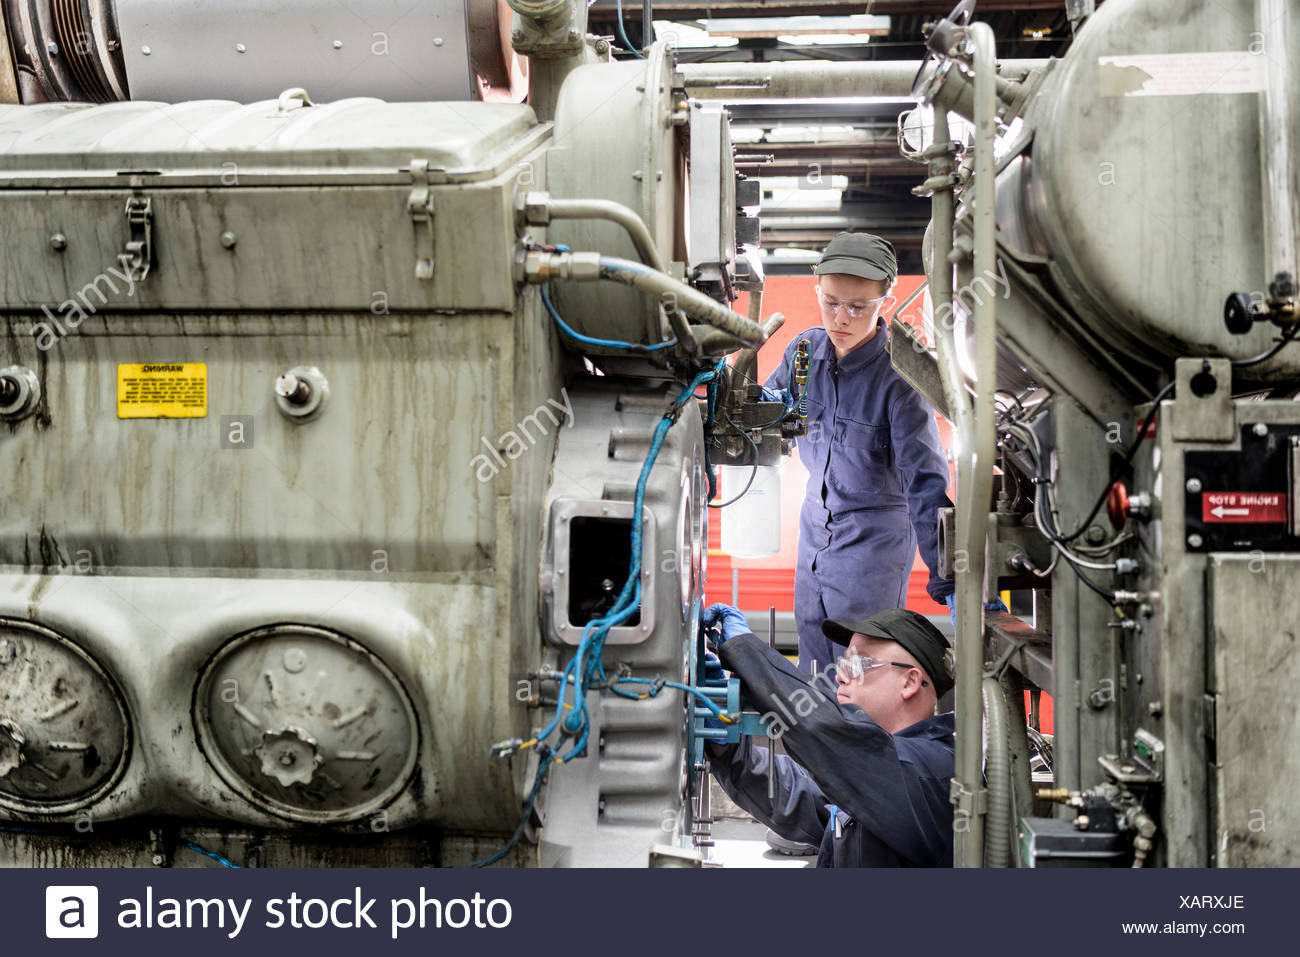 Apprentice watching engineer working on locomotive engine in train works - Stock Image